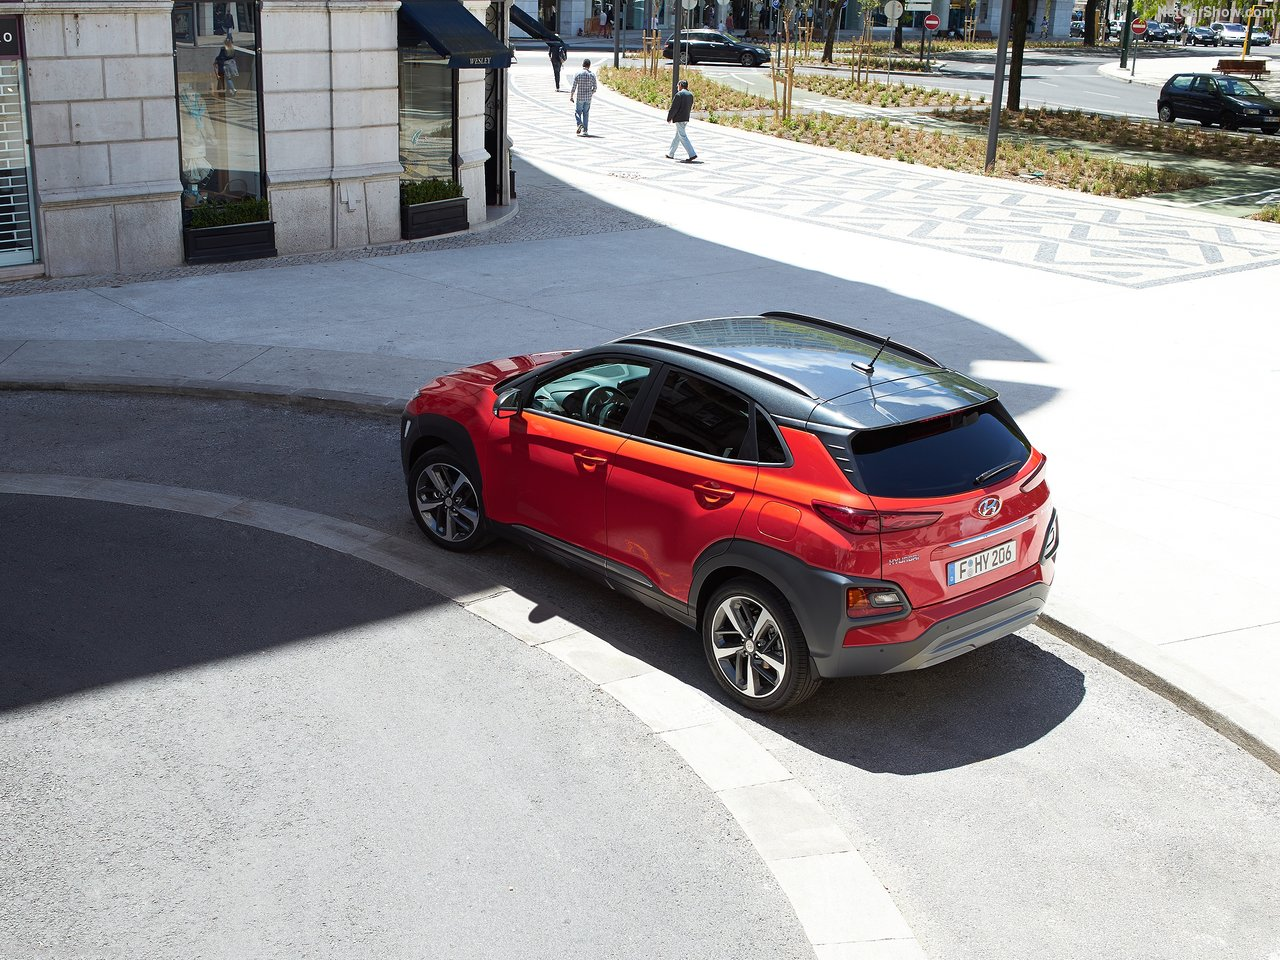 Hyundai Kona photo 178486